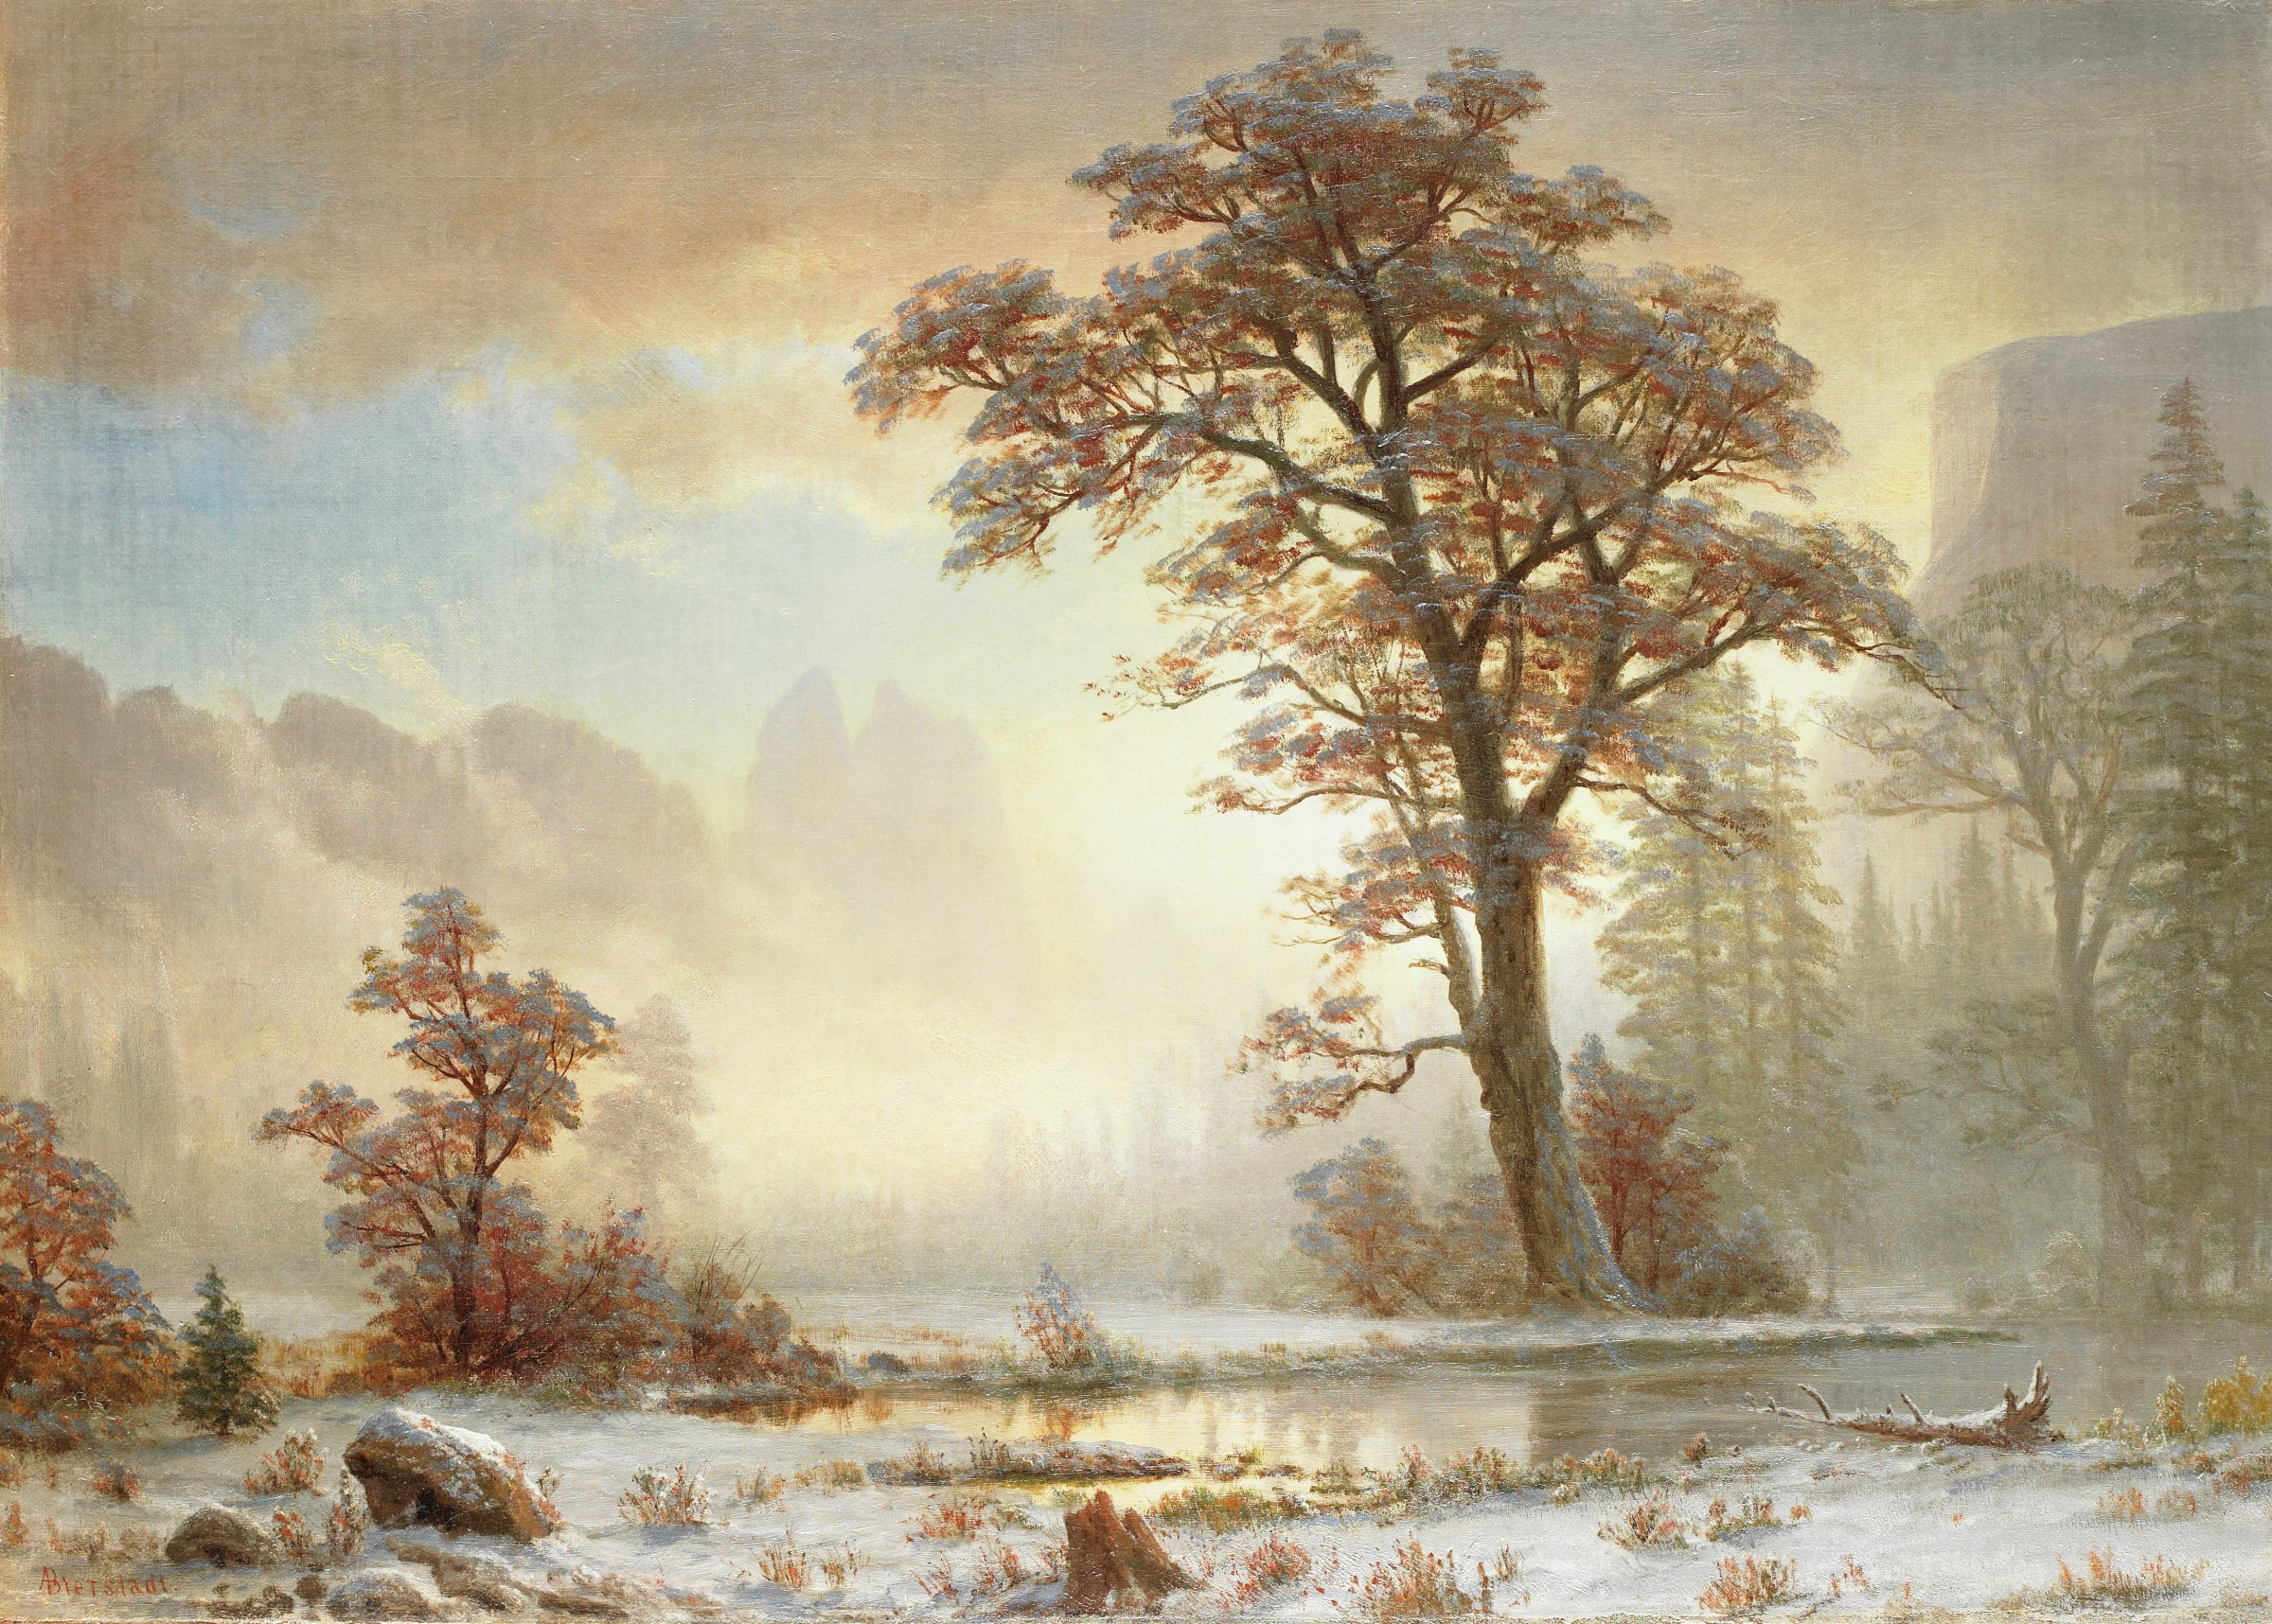 In this painting, a valley flanked by rocky mountains on two sides (Yosemite Valley) is blanketed with a thin layer of snow. In the center of the canvas, a large tree with orange leaves extends vertically through the composition, standing just behind a body a shallow, still river. The middle ground is composed of trees—both pines and leafy trees with autumnally colored foliage—masked by a hazy atmosphere.